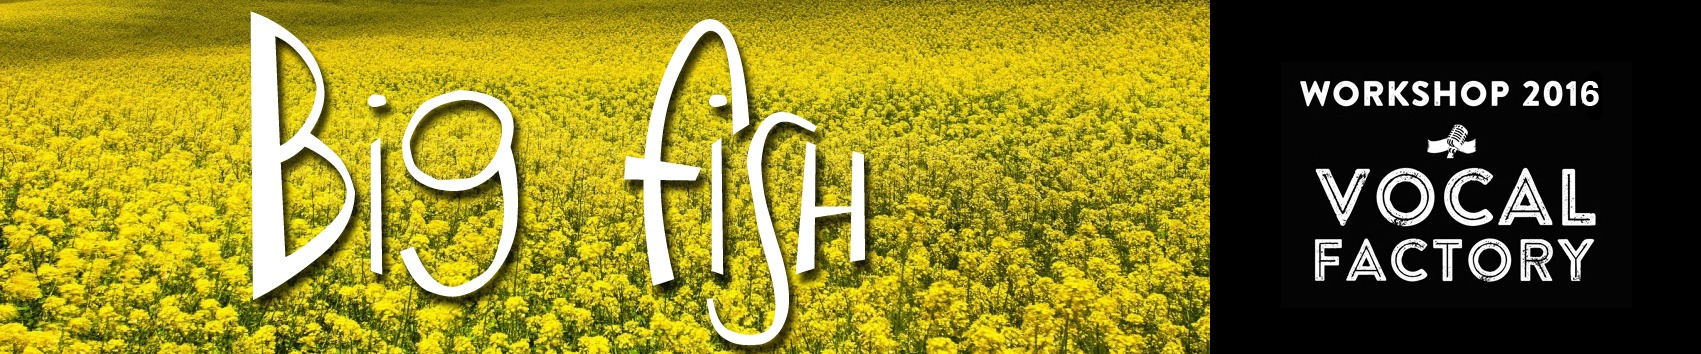 07_Banner_BIGFISH